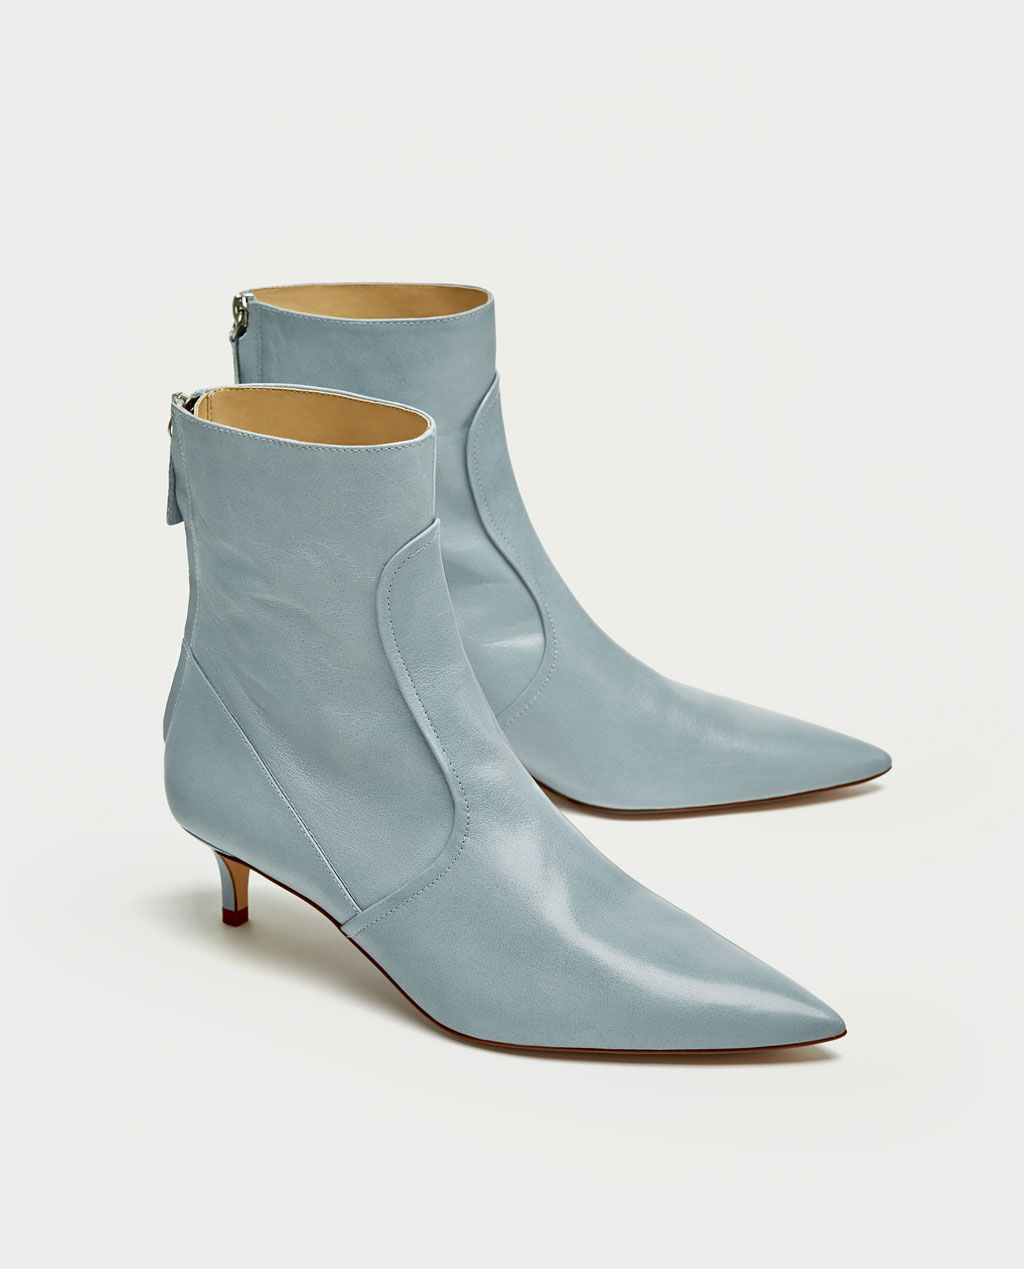 Mid Heel Leather Ankle Boots Shoes Accessories Sale Woman Zara United States Boots Leather Ankle Boots Leather Shoes Woman